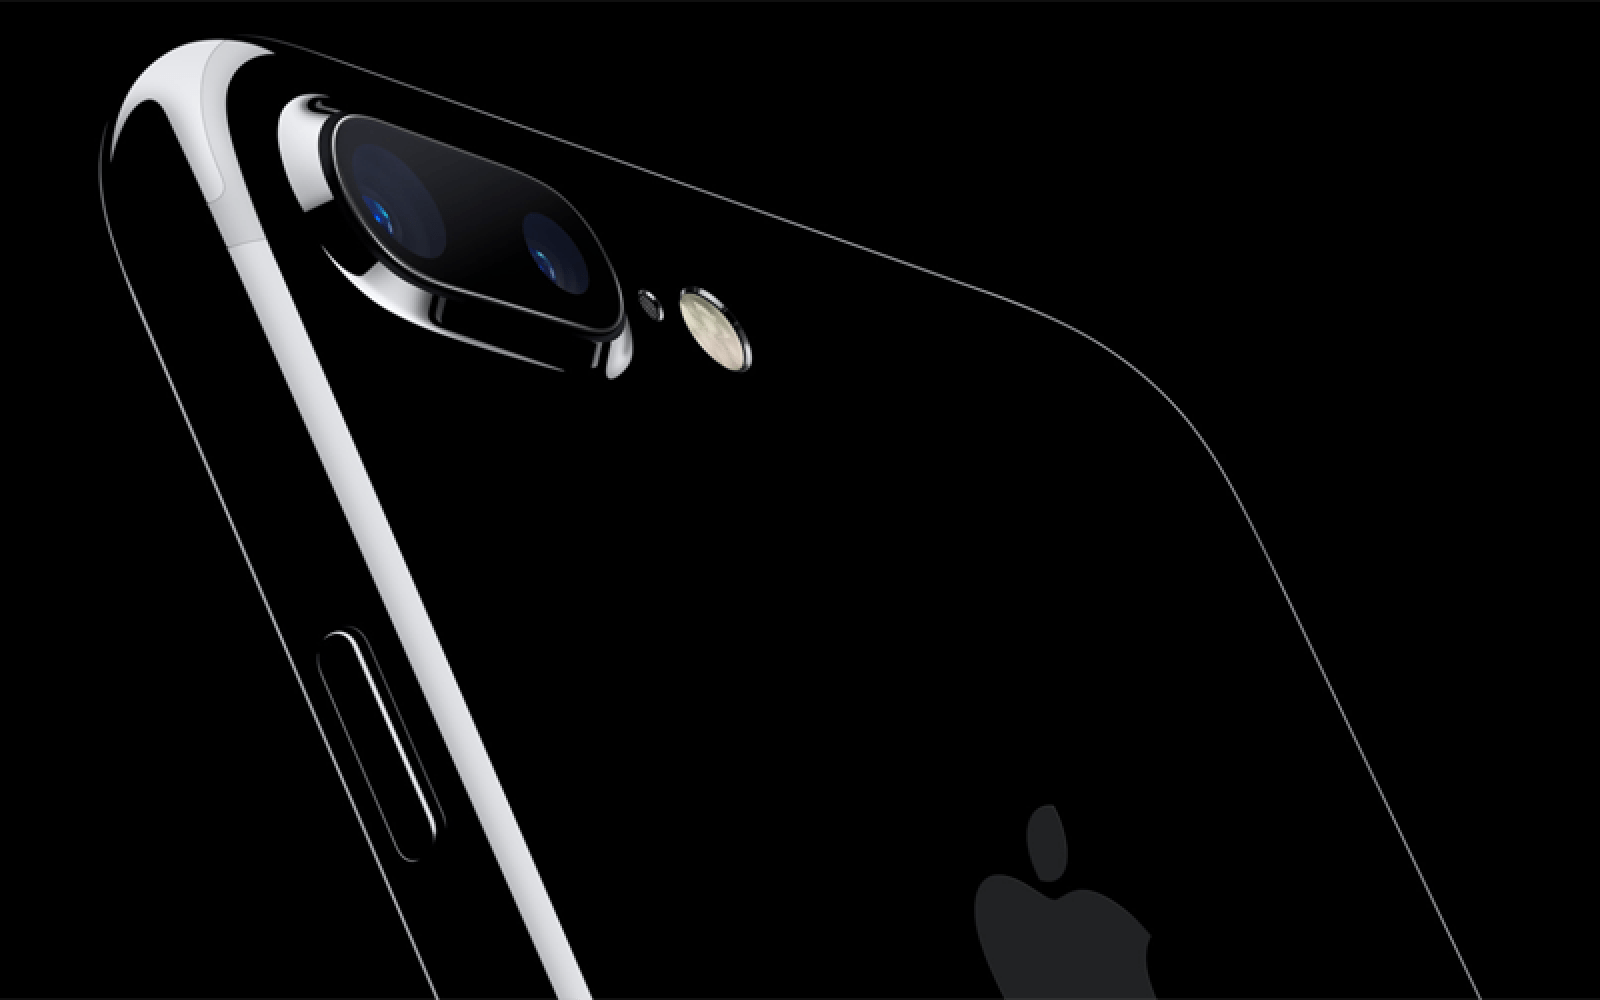 Sensor on second iPhone 7 Plus camera is smaller than main one, calculations show